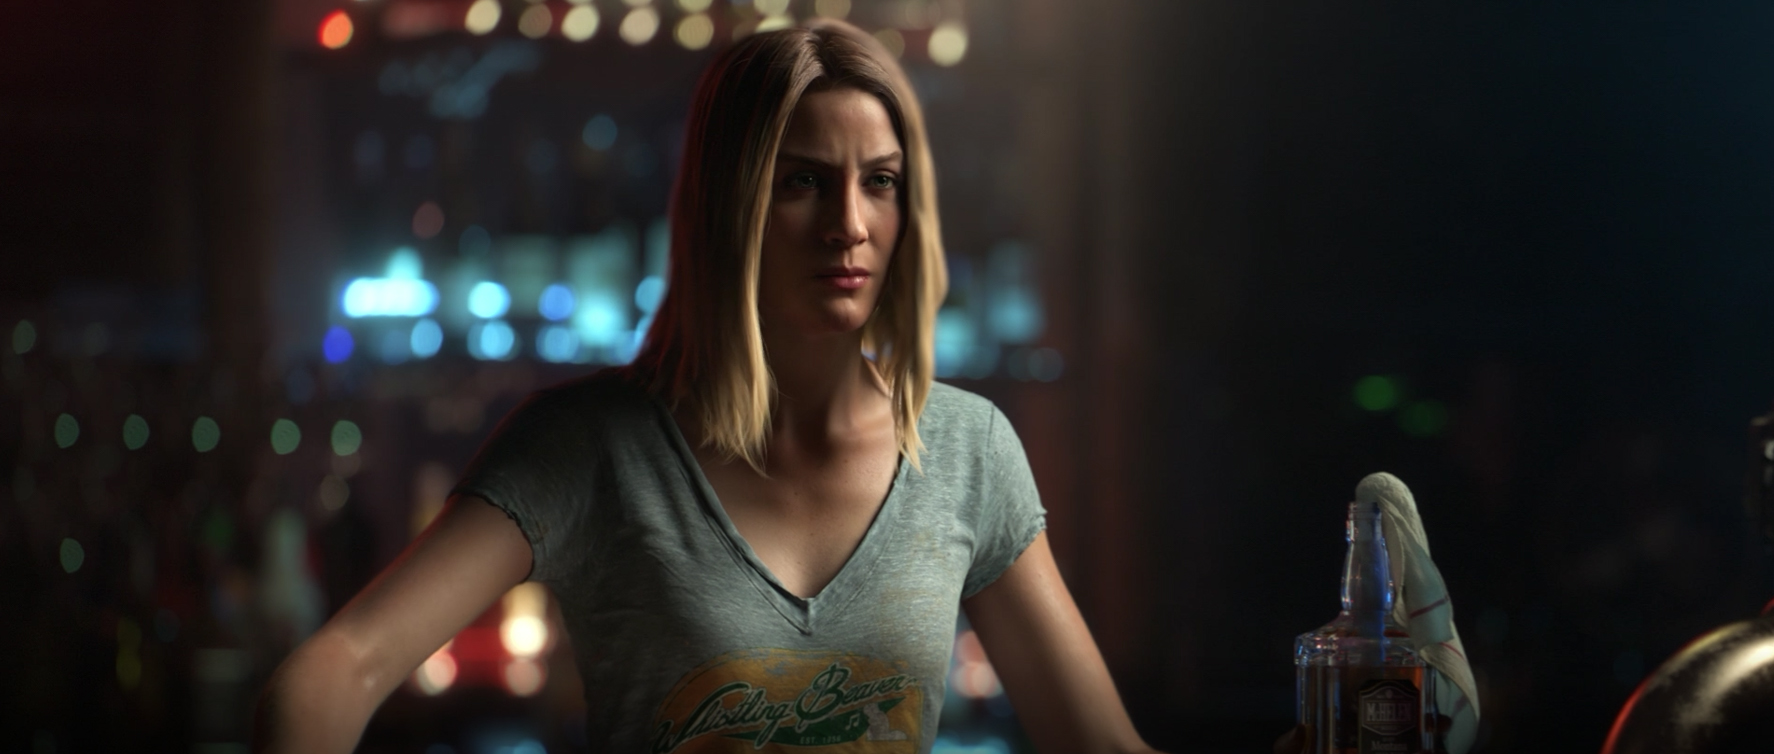 Far Cry 5 Gets Release Date Will Be About Freedom Faith And Firearms While Battling A Cult Usgamer